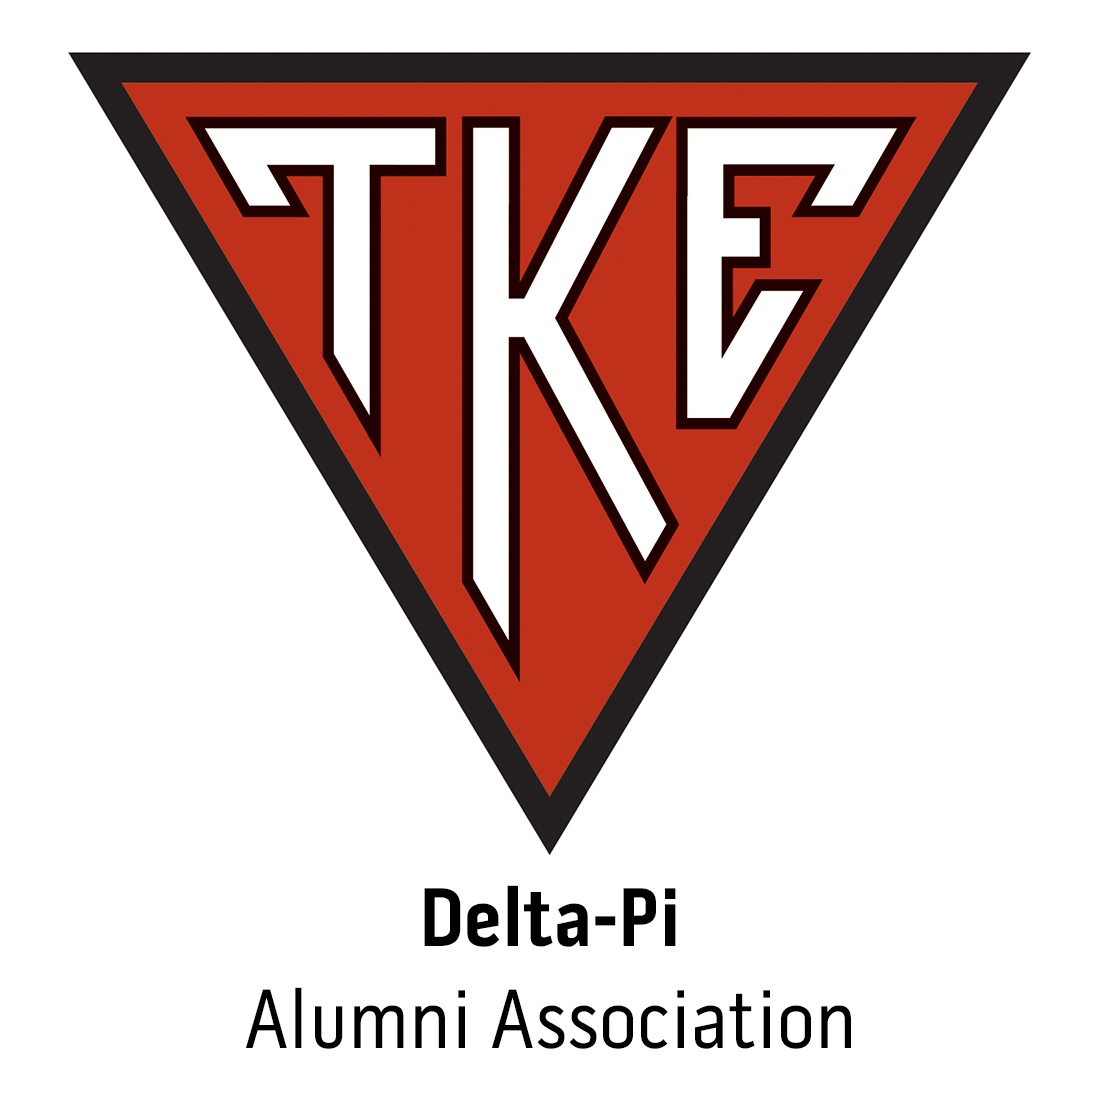 Delta-Pi Alumni Association for Eastern Michigan University